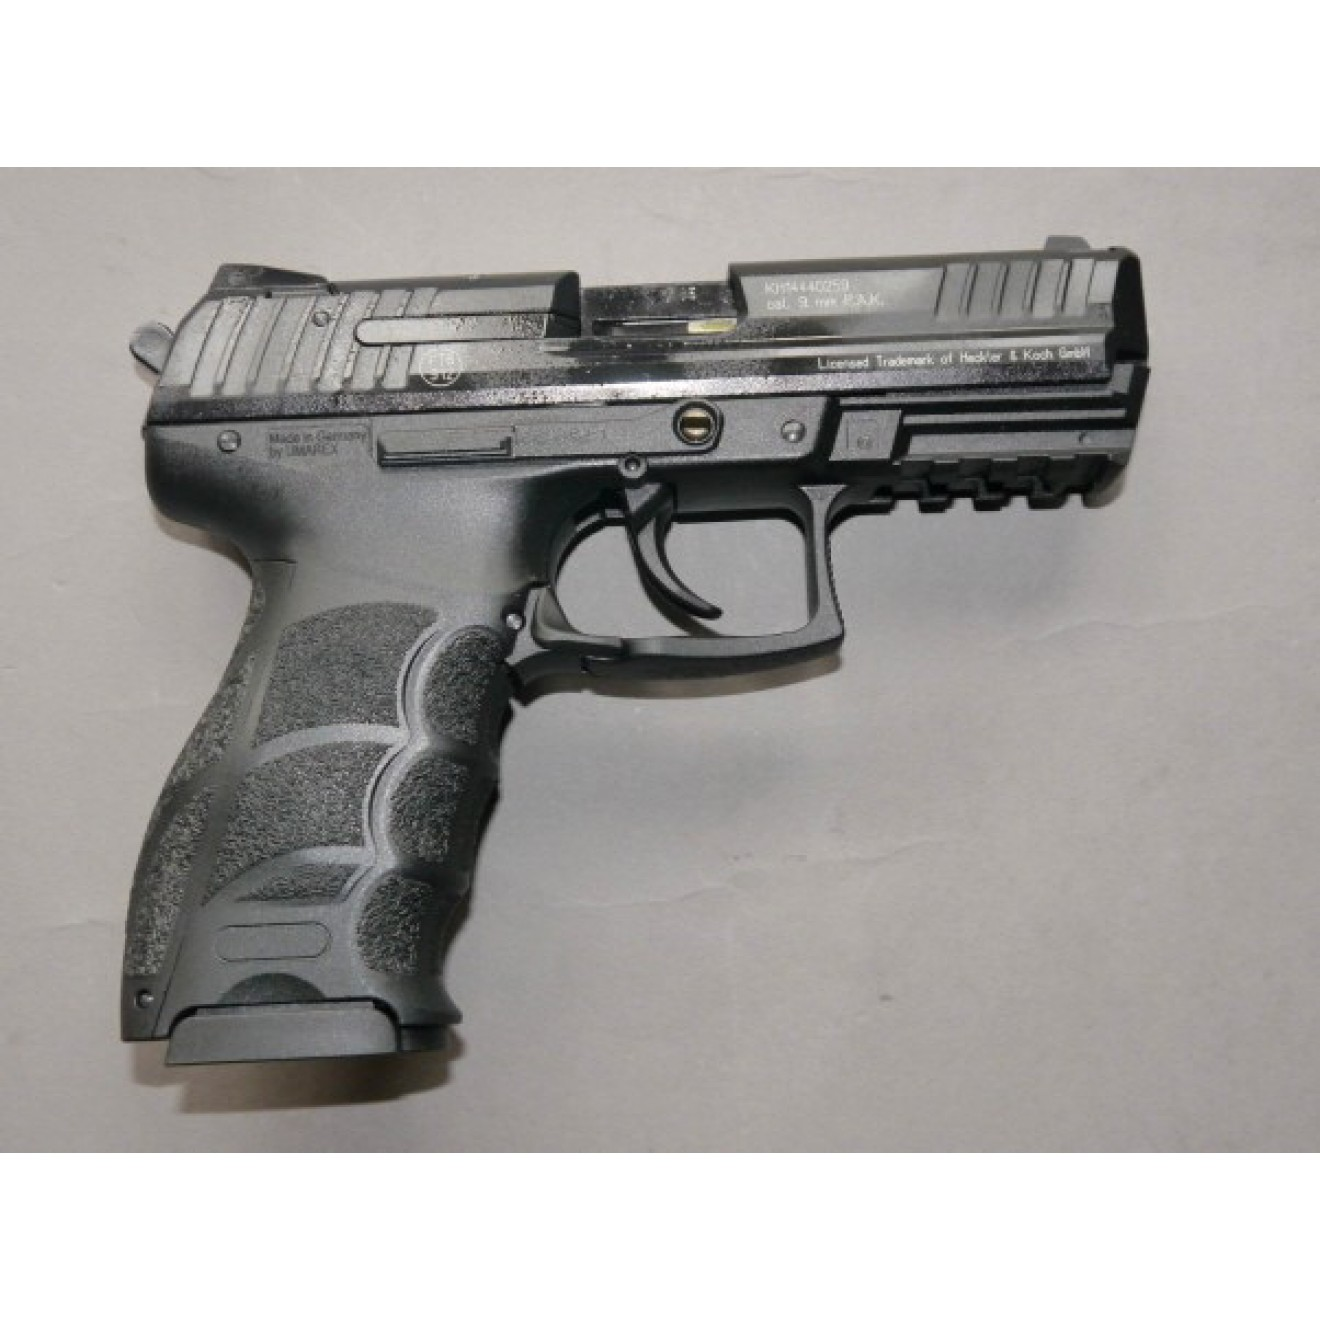 Heckler & Koch P 30 black 9mm